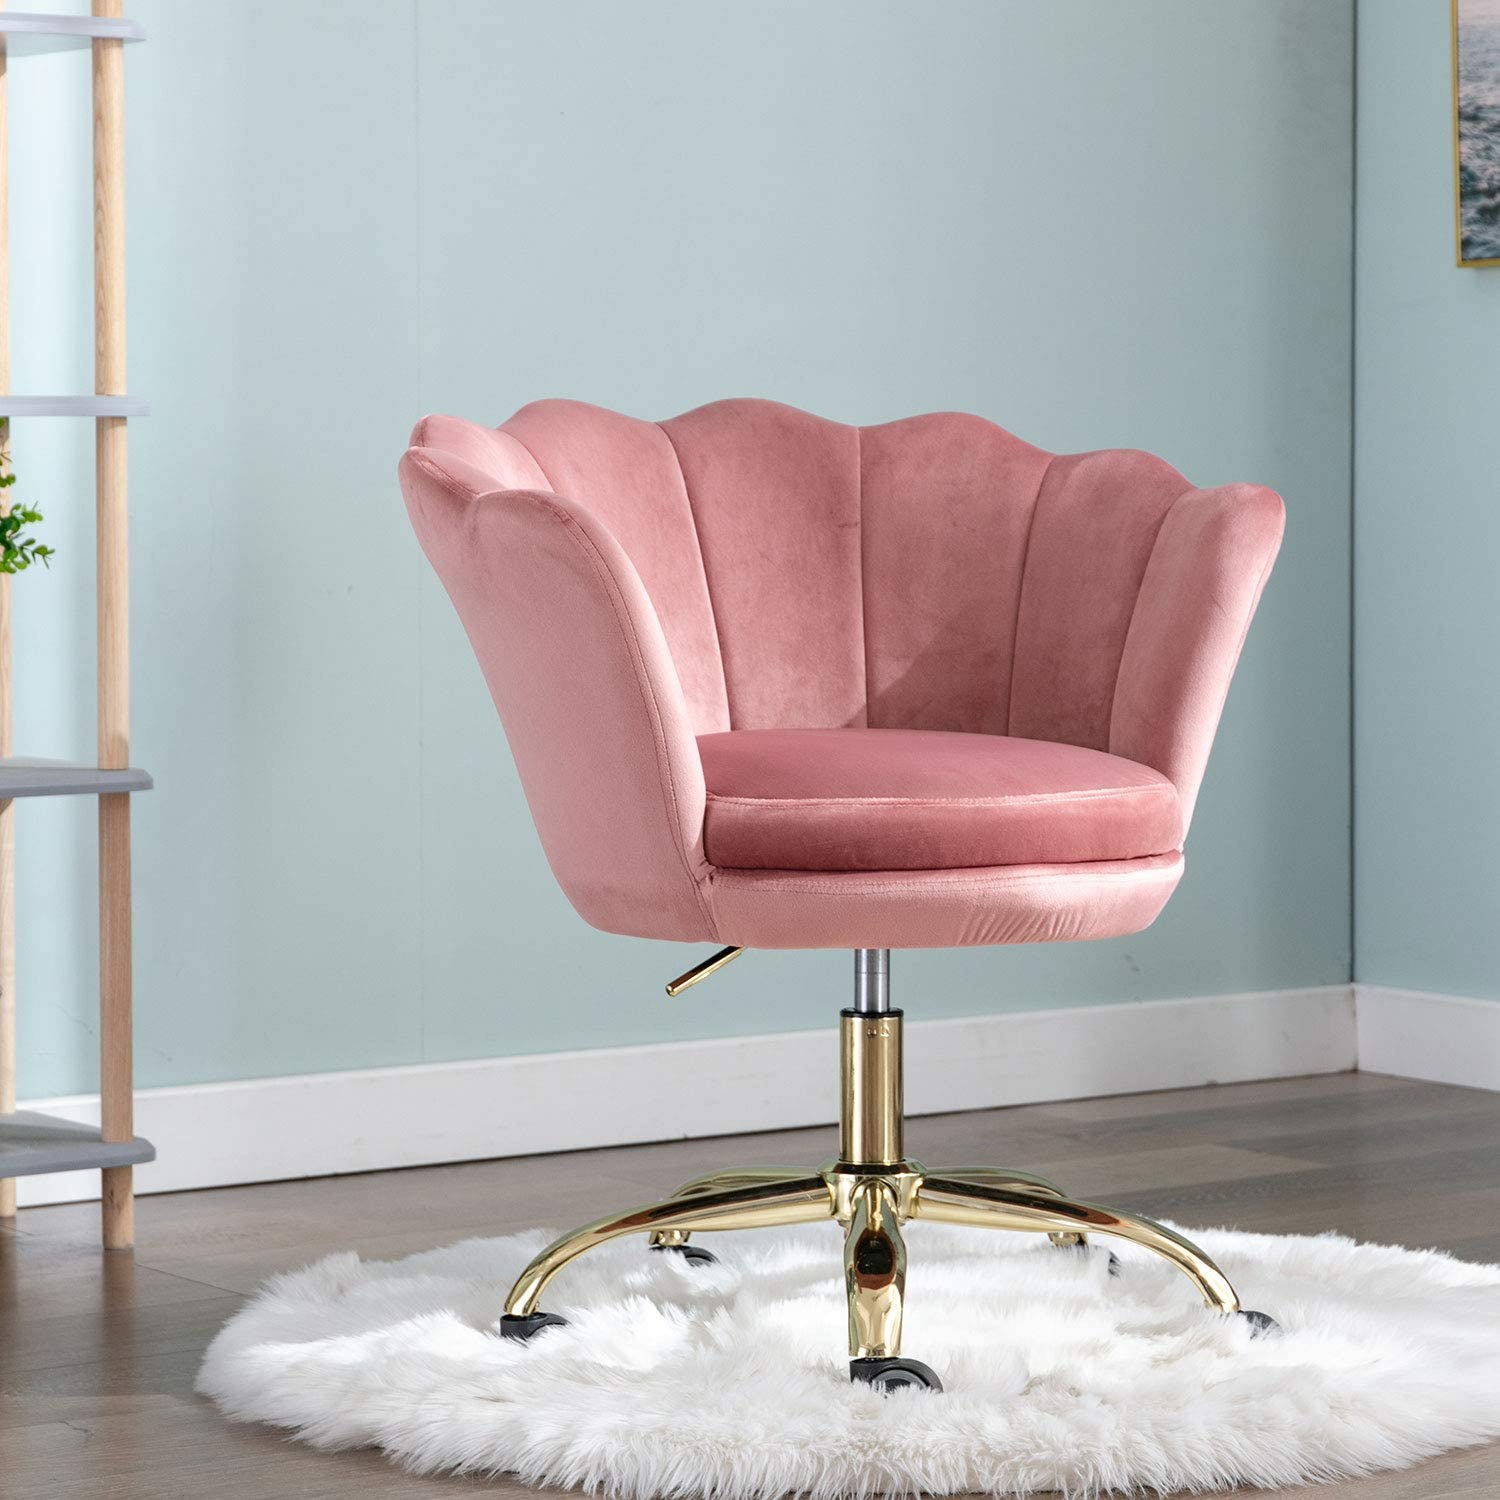 Comfy Upholstered Lotus Office Chair, Velvet Accent Armchair, Adjustable Swivel Task Stool with Gold Plating Base (Blush Pink)